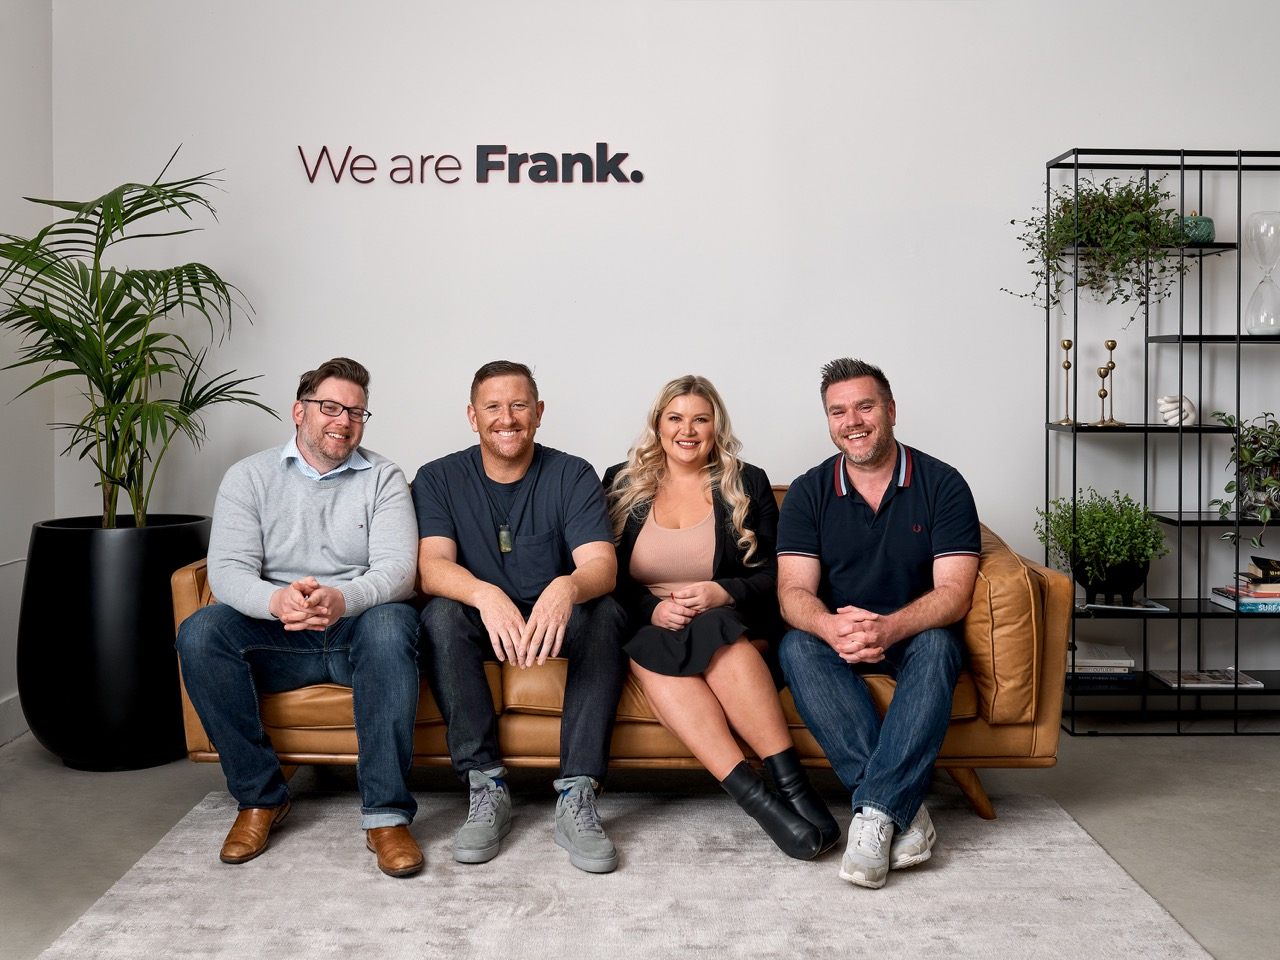 We are Frank brings Amobee to New Zealand with first of its kind partnership